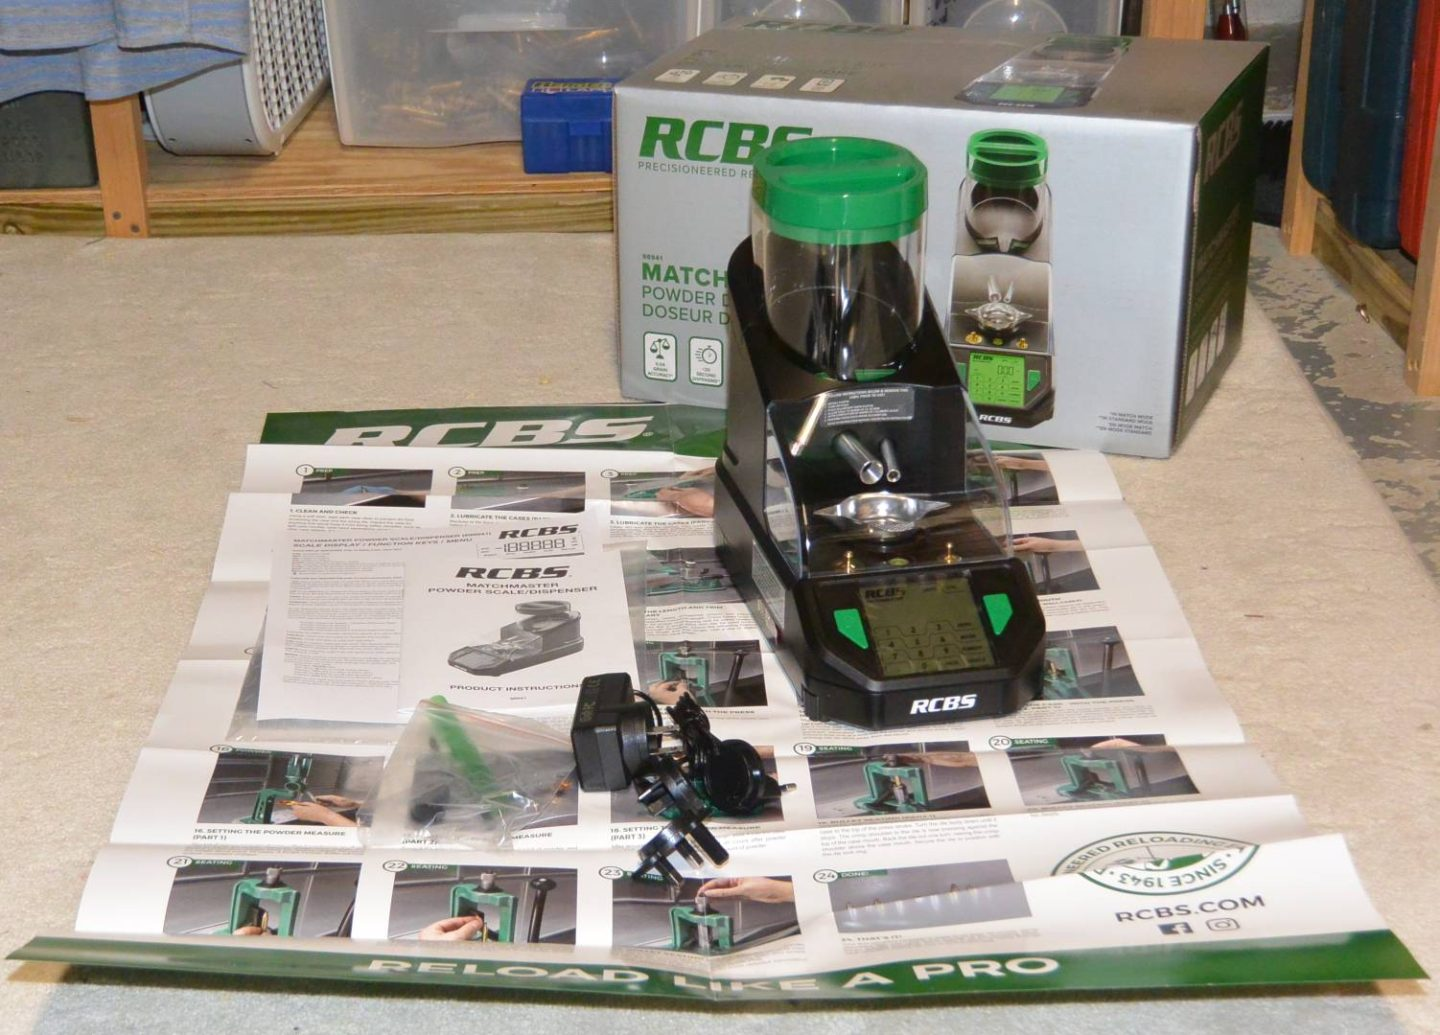 RCBS MatchMaster powder measure unboxing